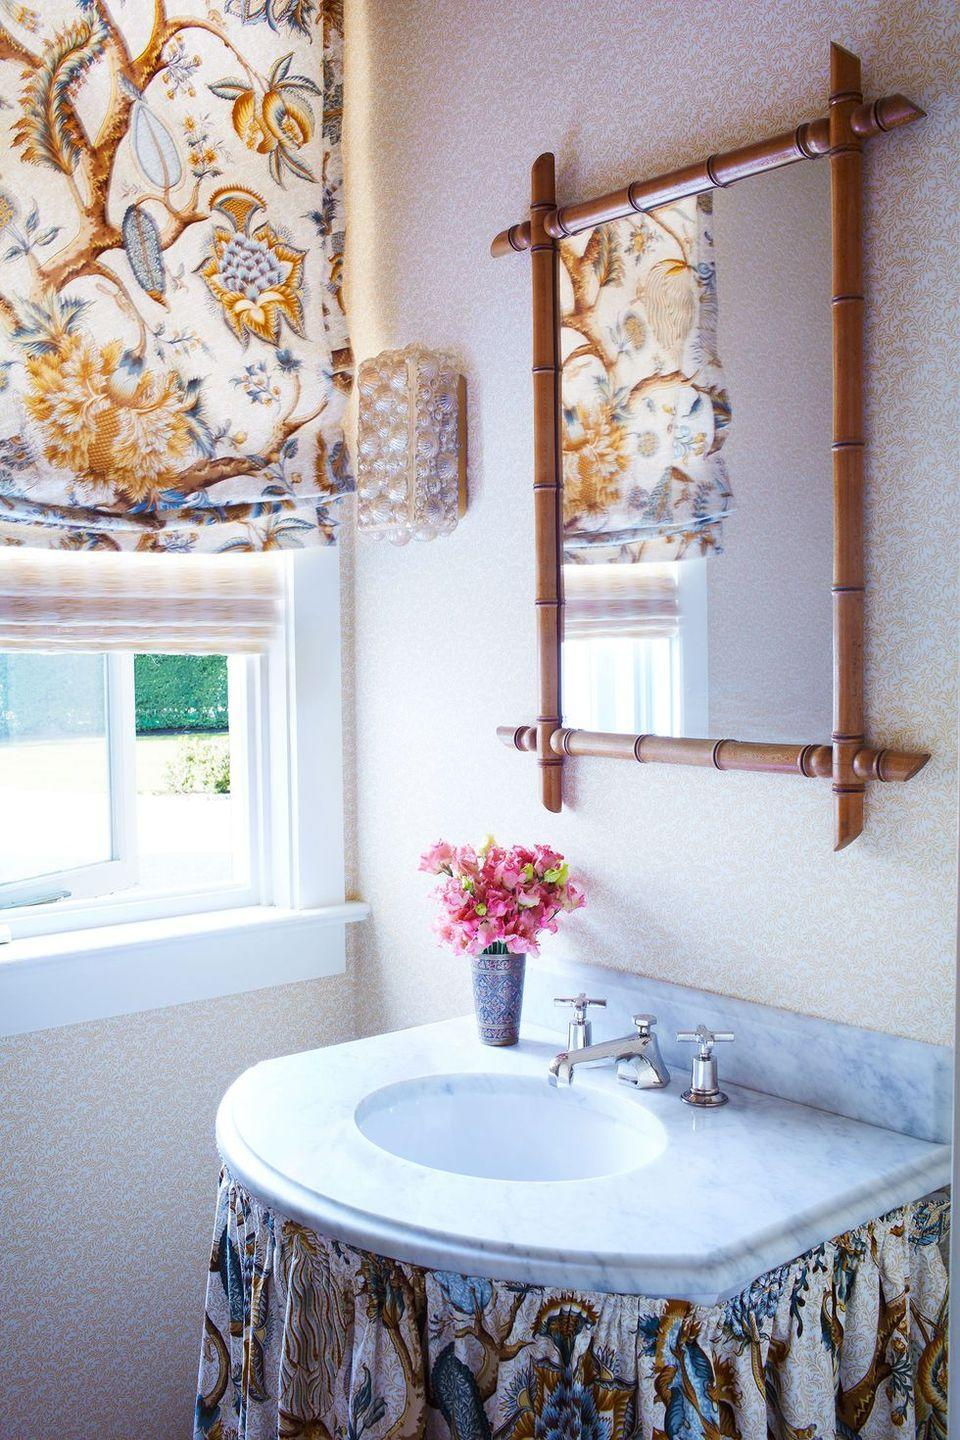 """<p>A skirt on a powder room sink can go a long way to conceal unsightly plumbing and add a serious dose of grandmillennial chic. We love the rust-colored floral that textile designer Remy Renzullo selected for this <a href=""""https://www.elledecor.com/design-decorate/house-interiors/a36501511/remy-renzullo-southampton-ny/"""" rel=""""nofollow noopener"""" target=""""_blank"""" data-ylk=""""slk:Hamptons home."""" class=""""link rapid-noclick-resp"""">Hamptons home.</a> </p>"""